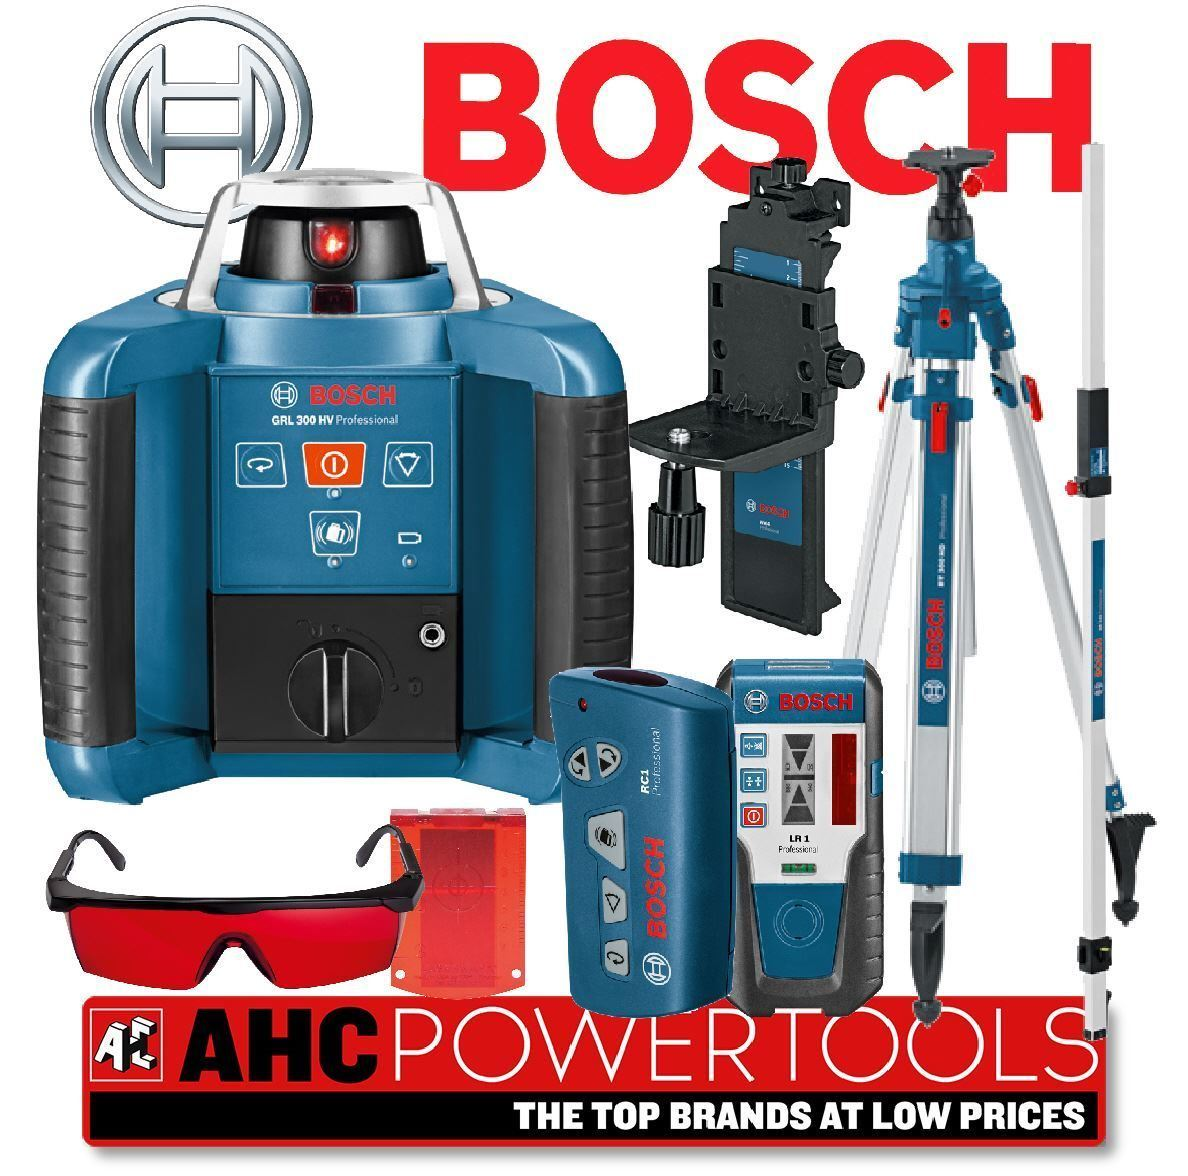 bosch grl 300 hv pro site rotierende laser level set grl300 ebay. Black Bedroom Furniture Sets. Home Design Ideas